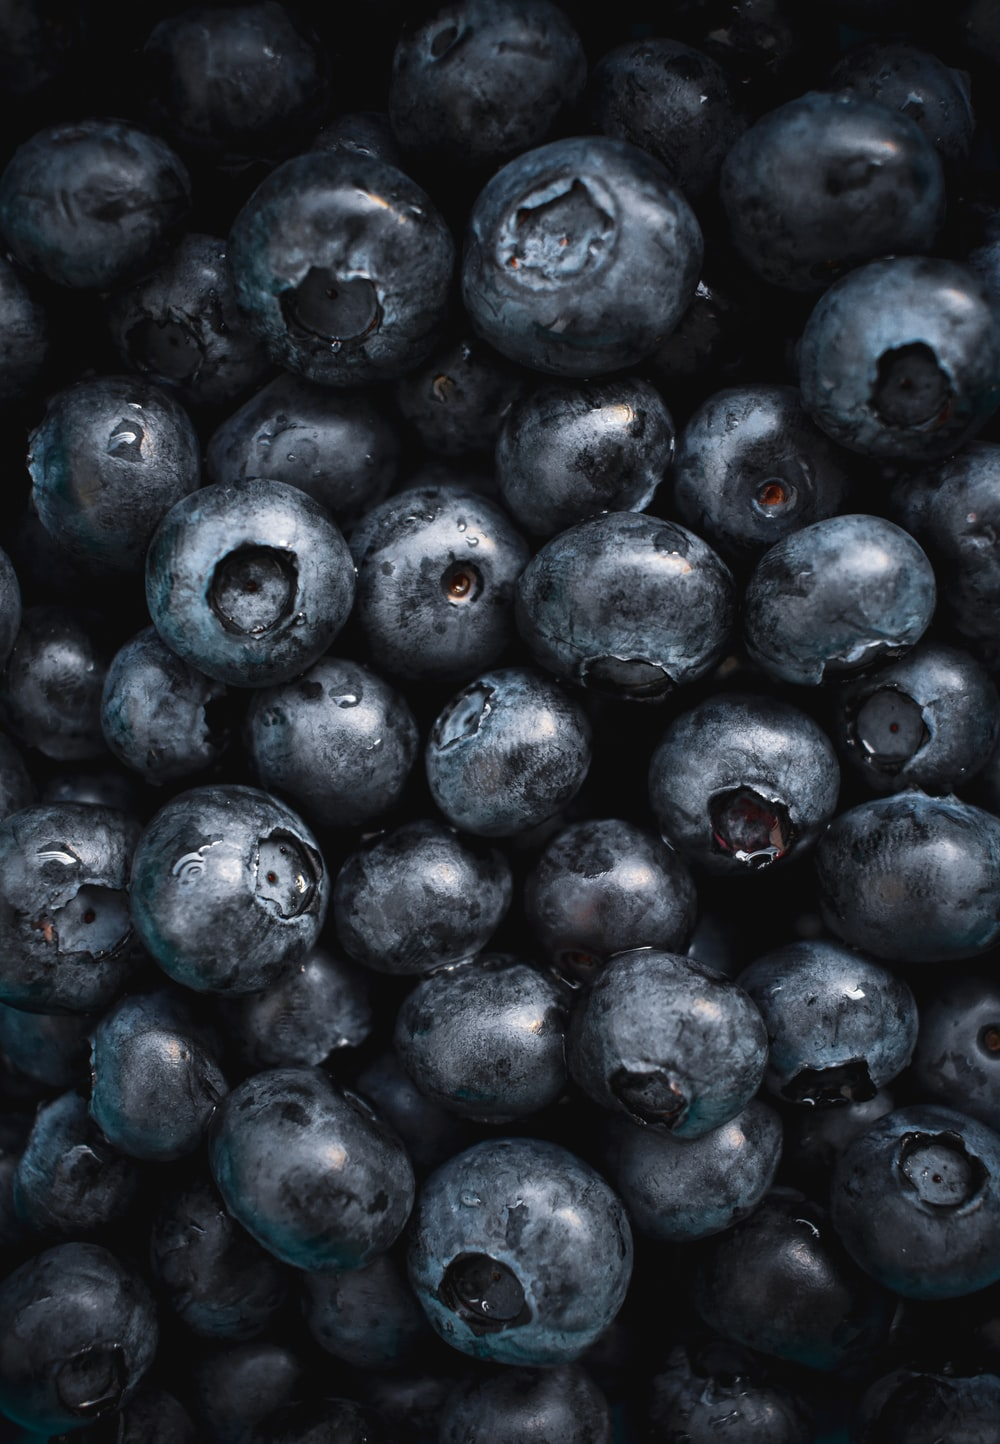 black round fruits in close up photography